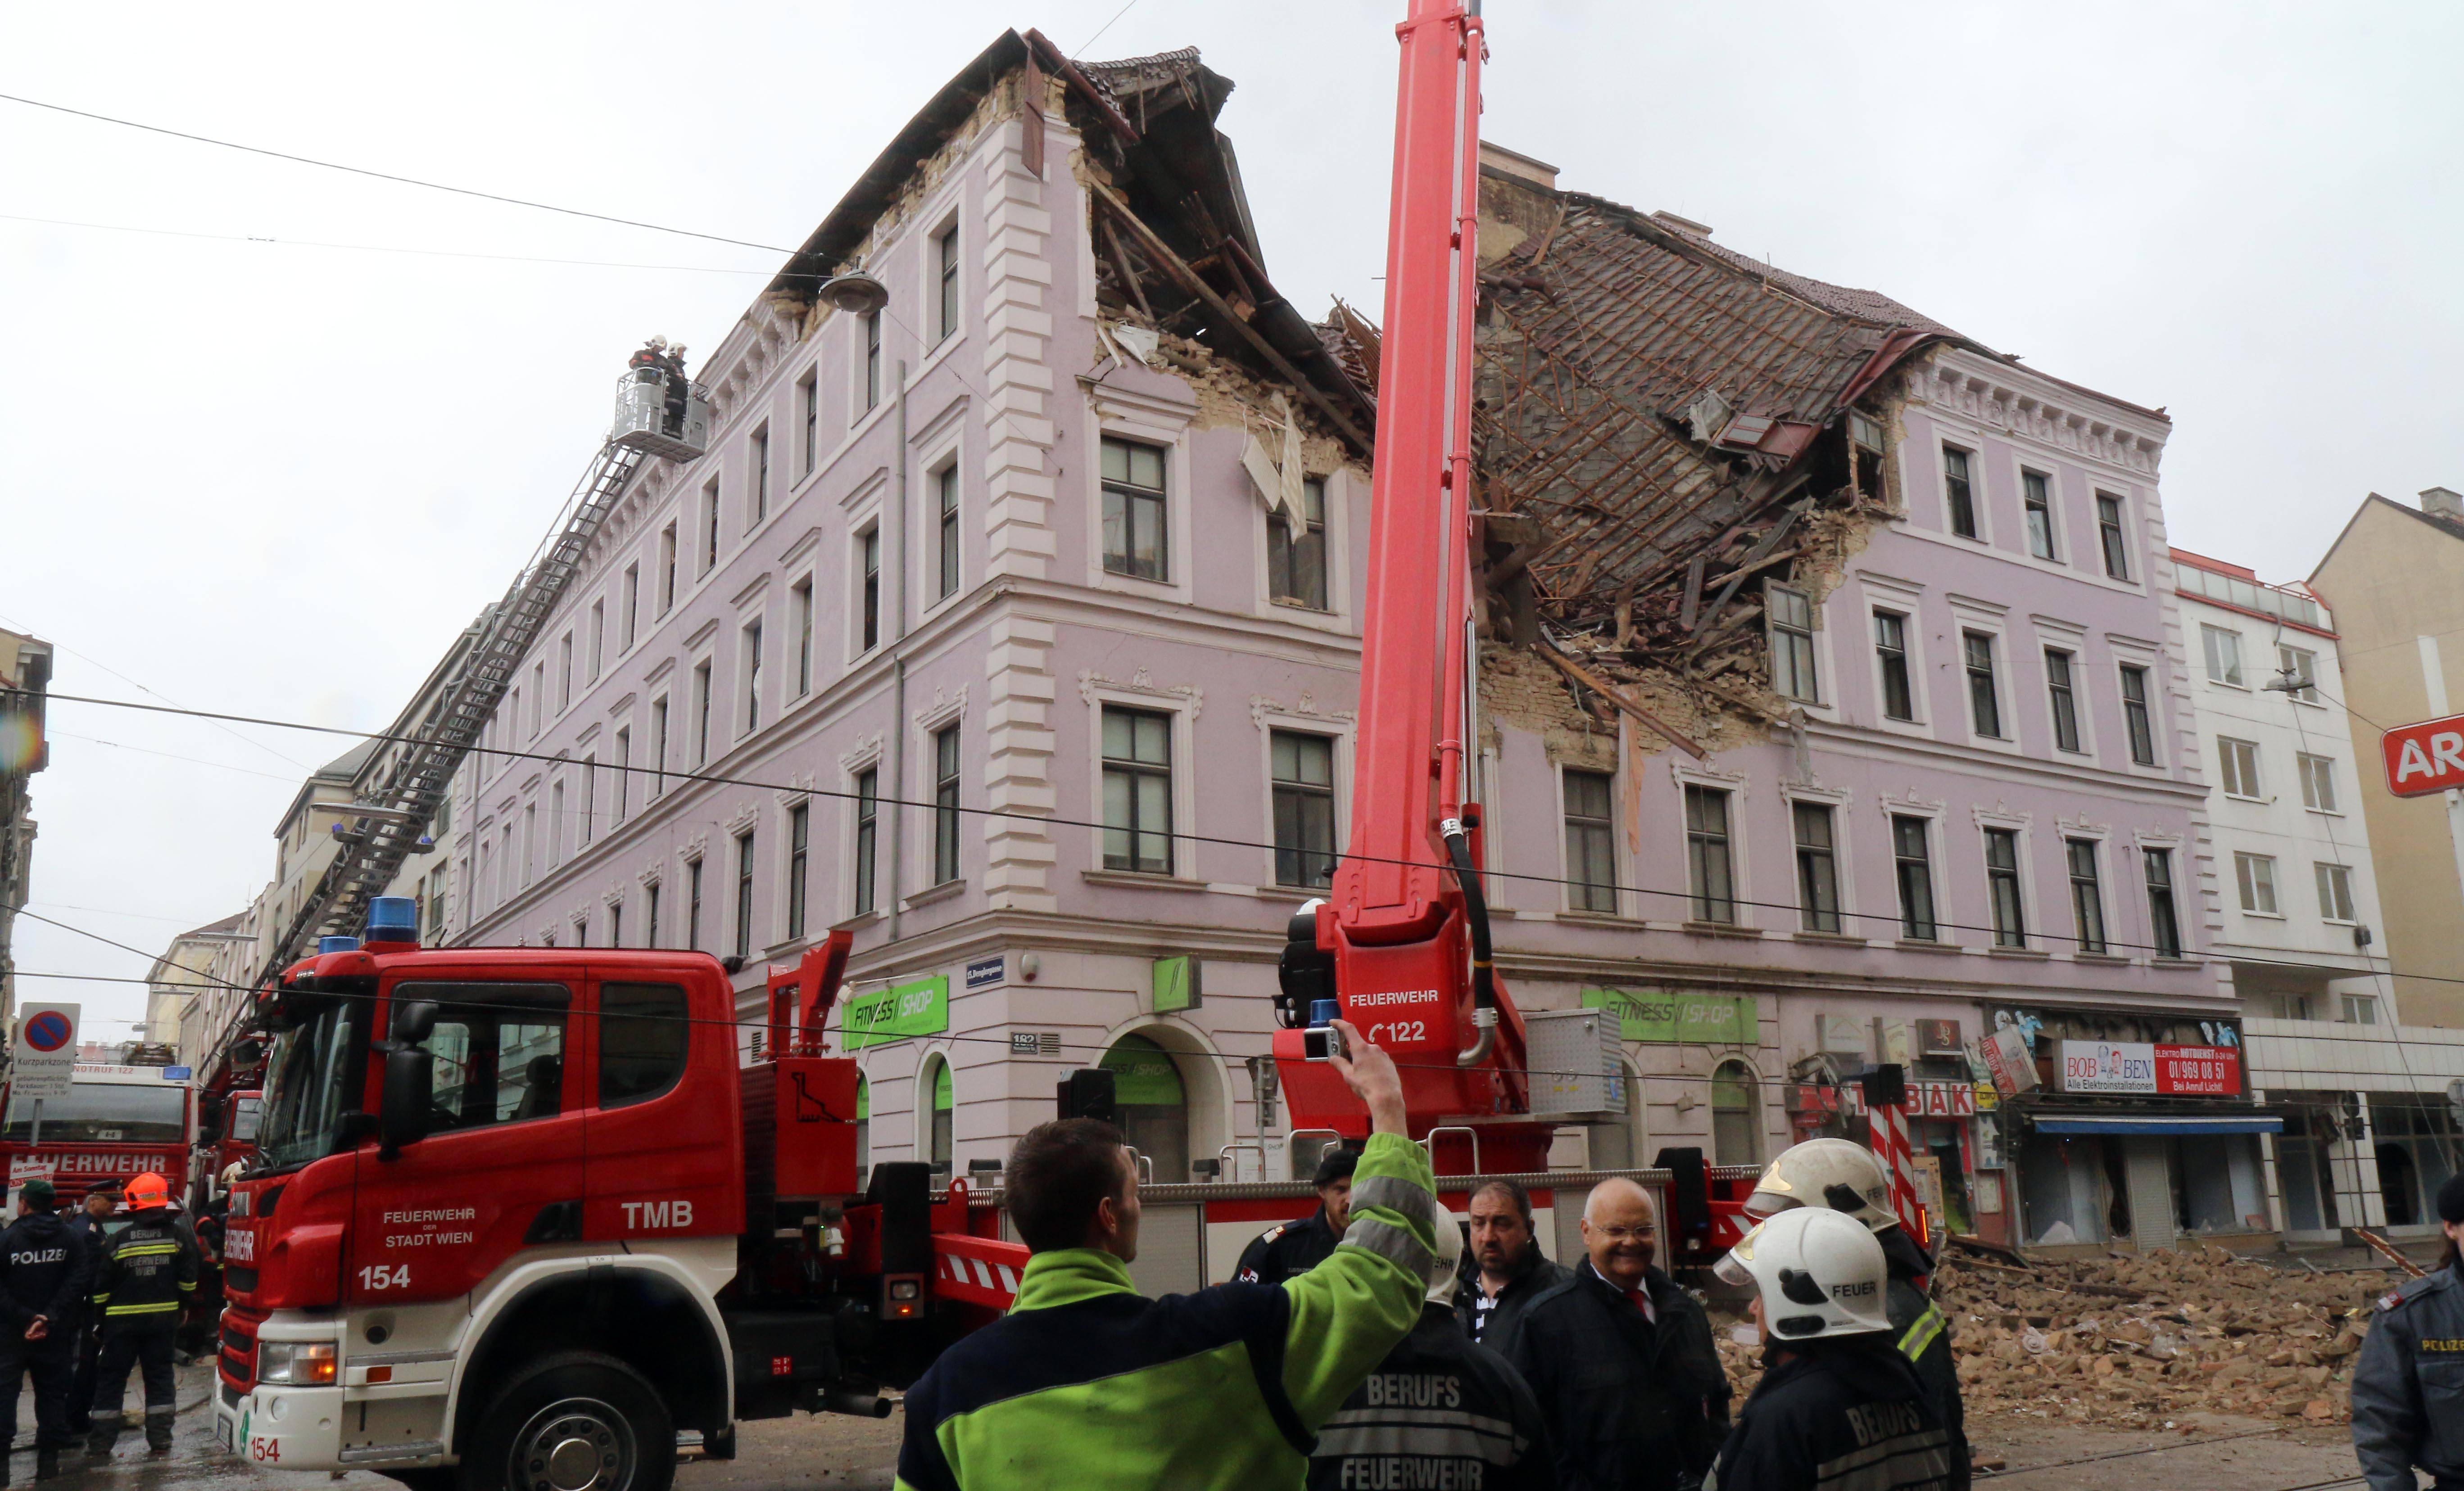 Firefighters and police are busy at a building damaged by an explosion in Vienna, Austria, Saturday, April 26, 2014. Austrian police say at least six people have been injured after the building collapsed following the reported explosion.